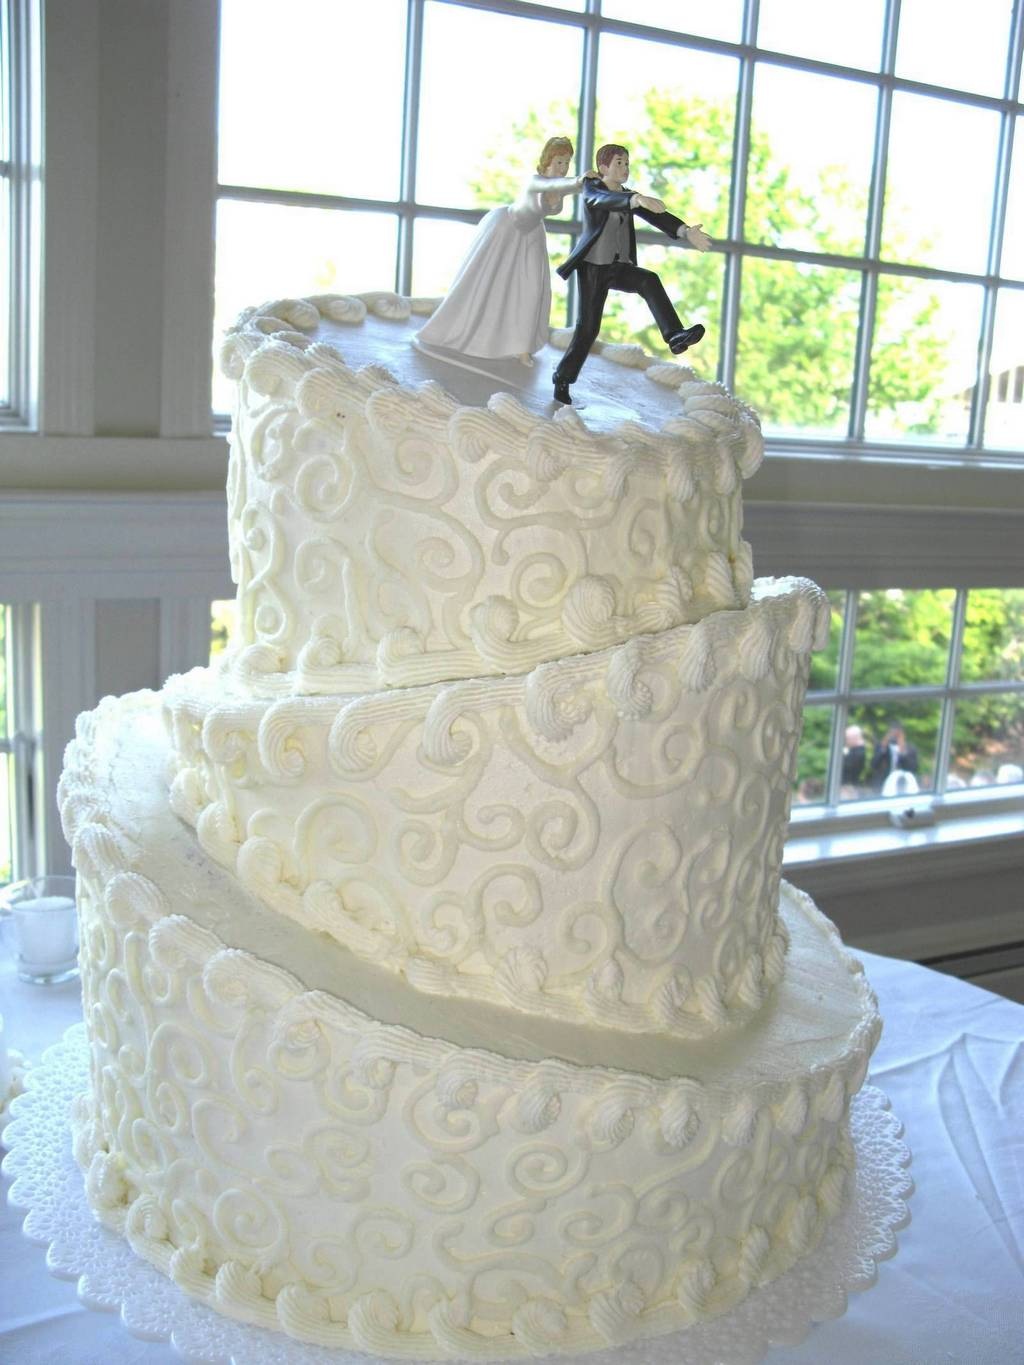 When You Are Choosing Topsy Turvy Wedding Cakes The Thing That Must Consider First Is Composition Of Cake Itself